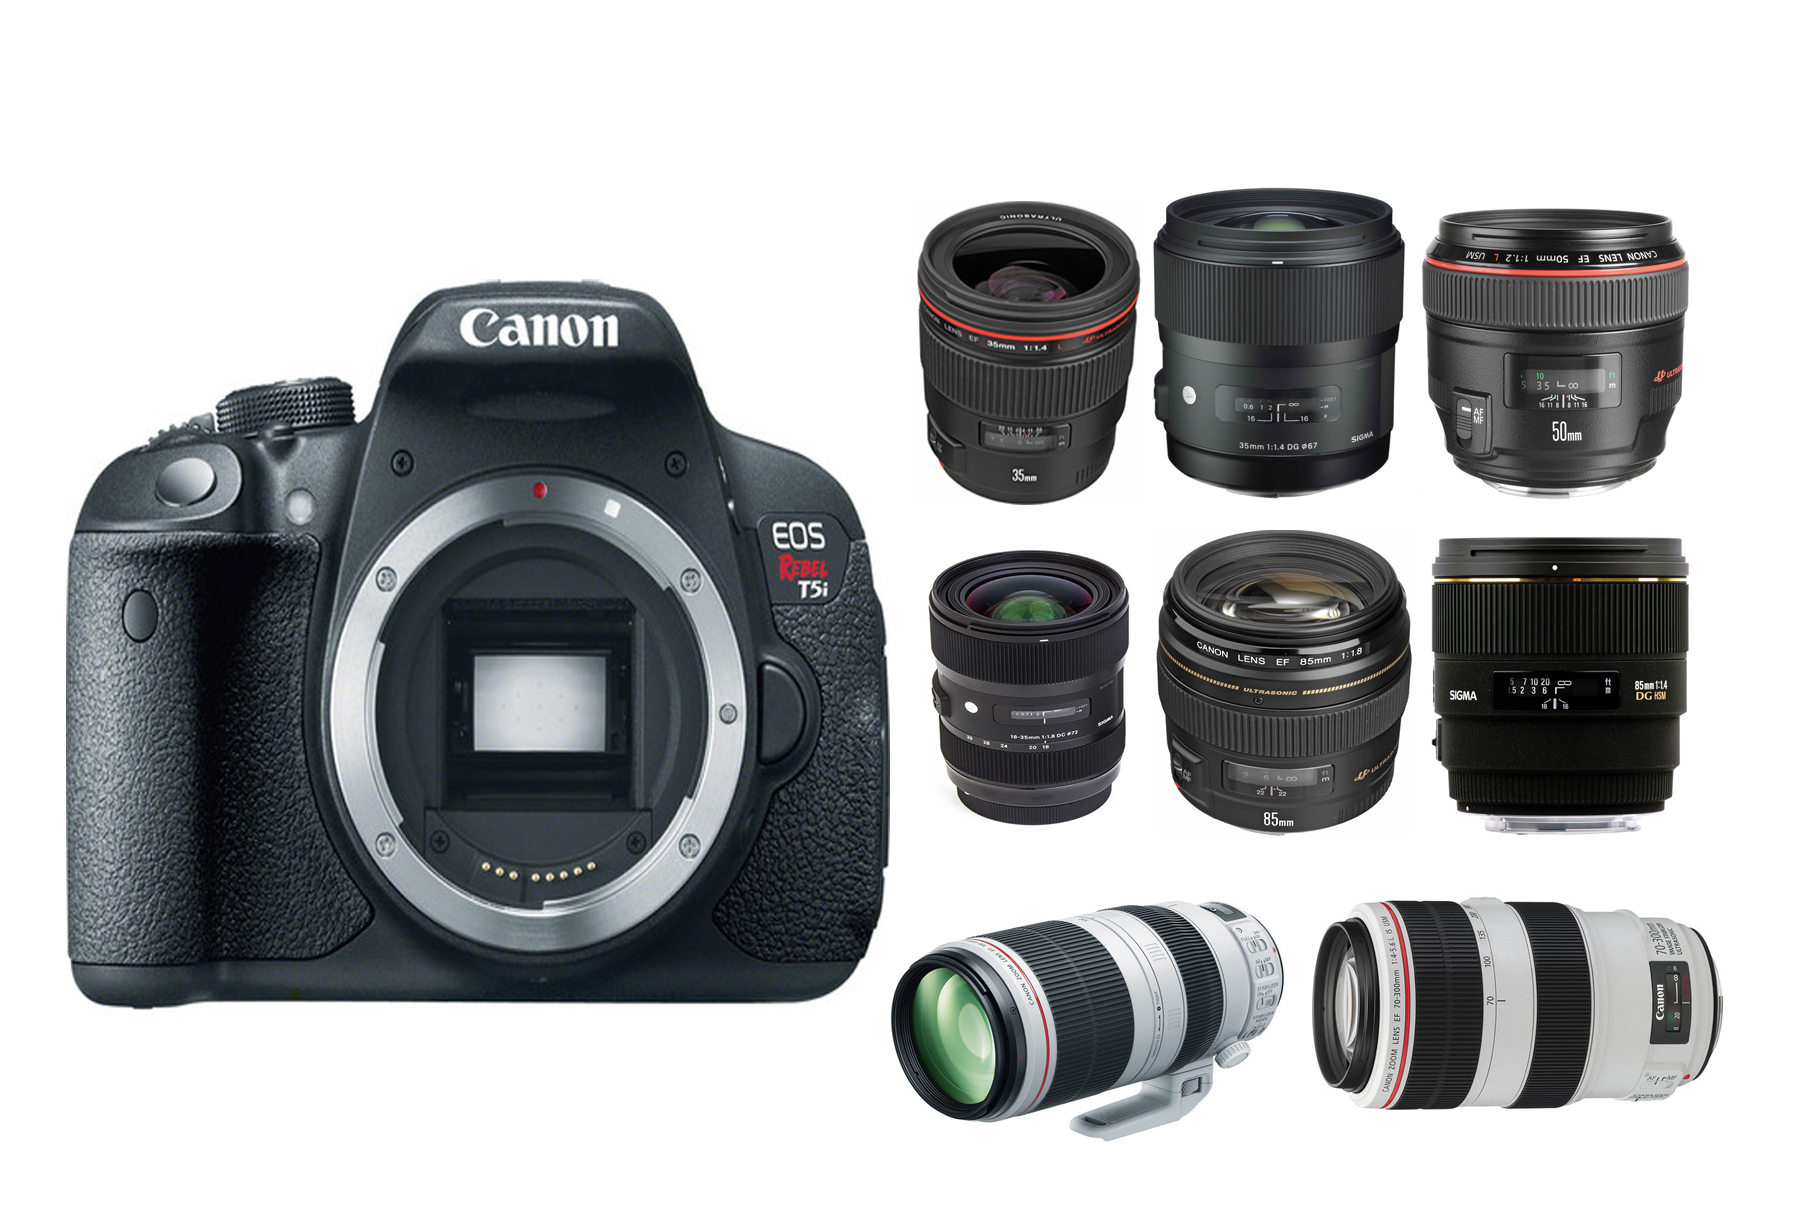 best lenses for canon eos 700d rebel t5i lens rumors. Black Bedroom Furniture Sets. Home Design Ideas